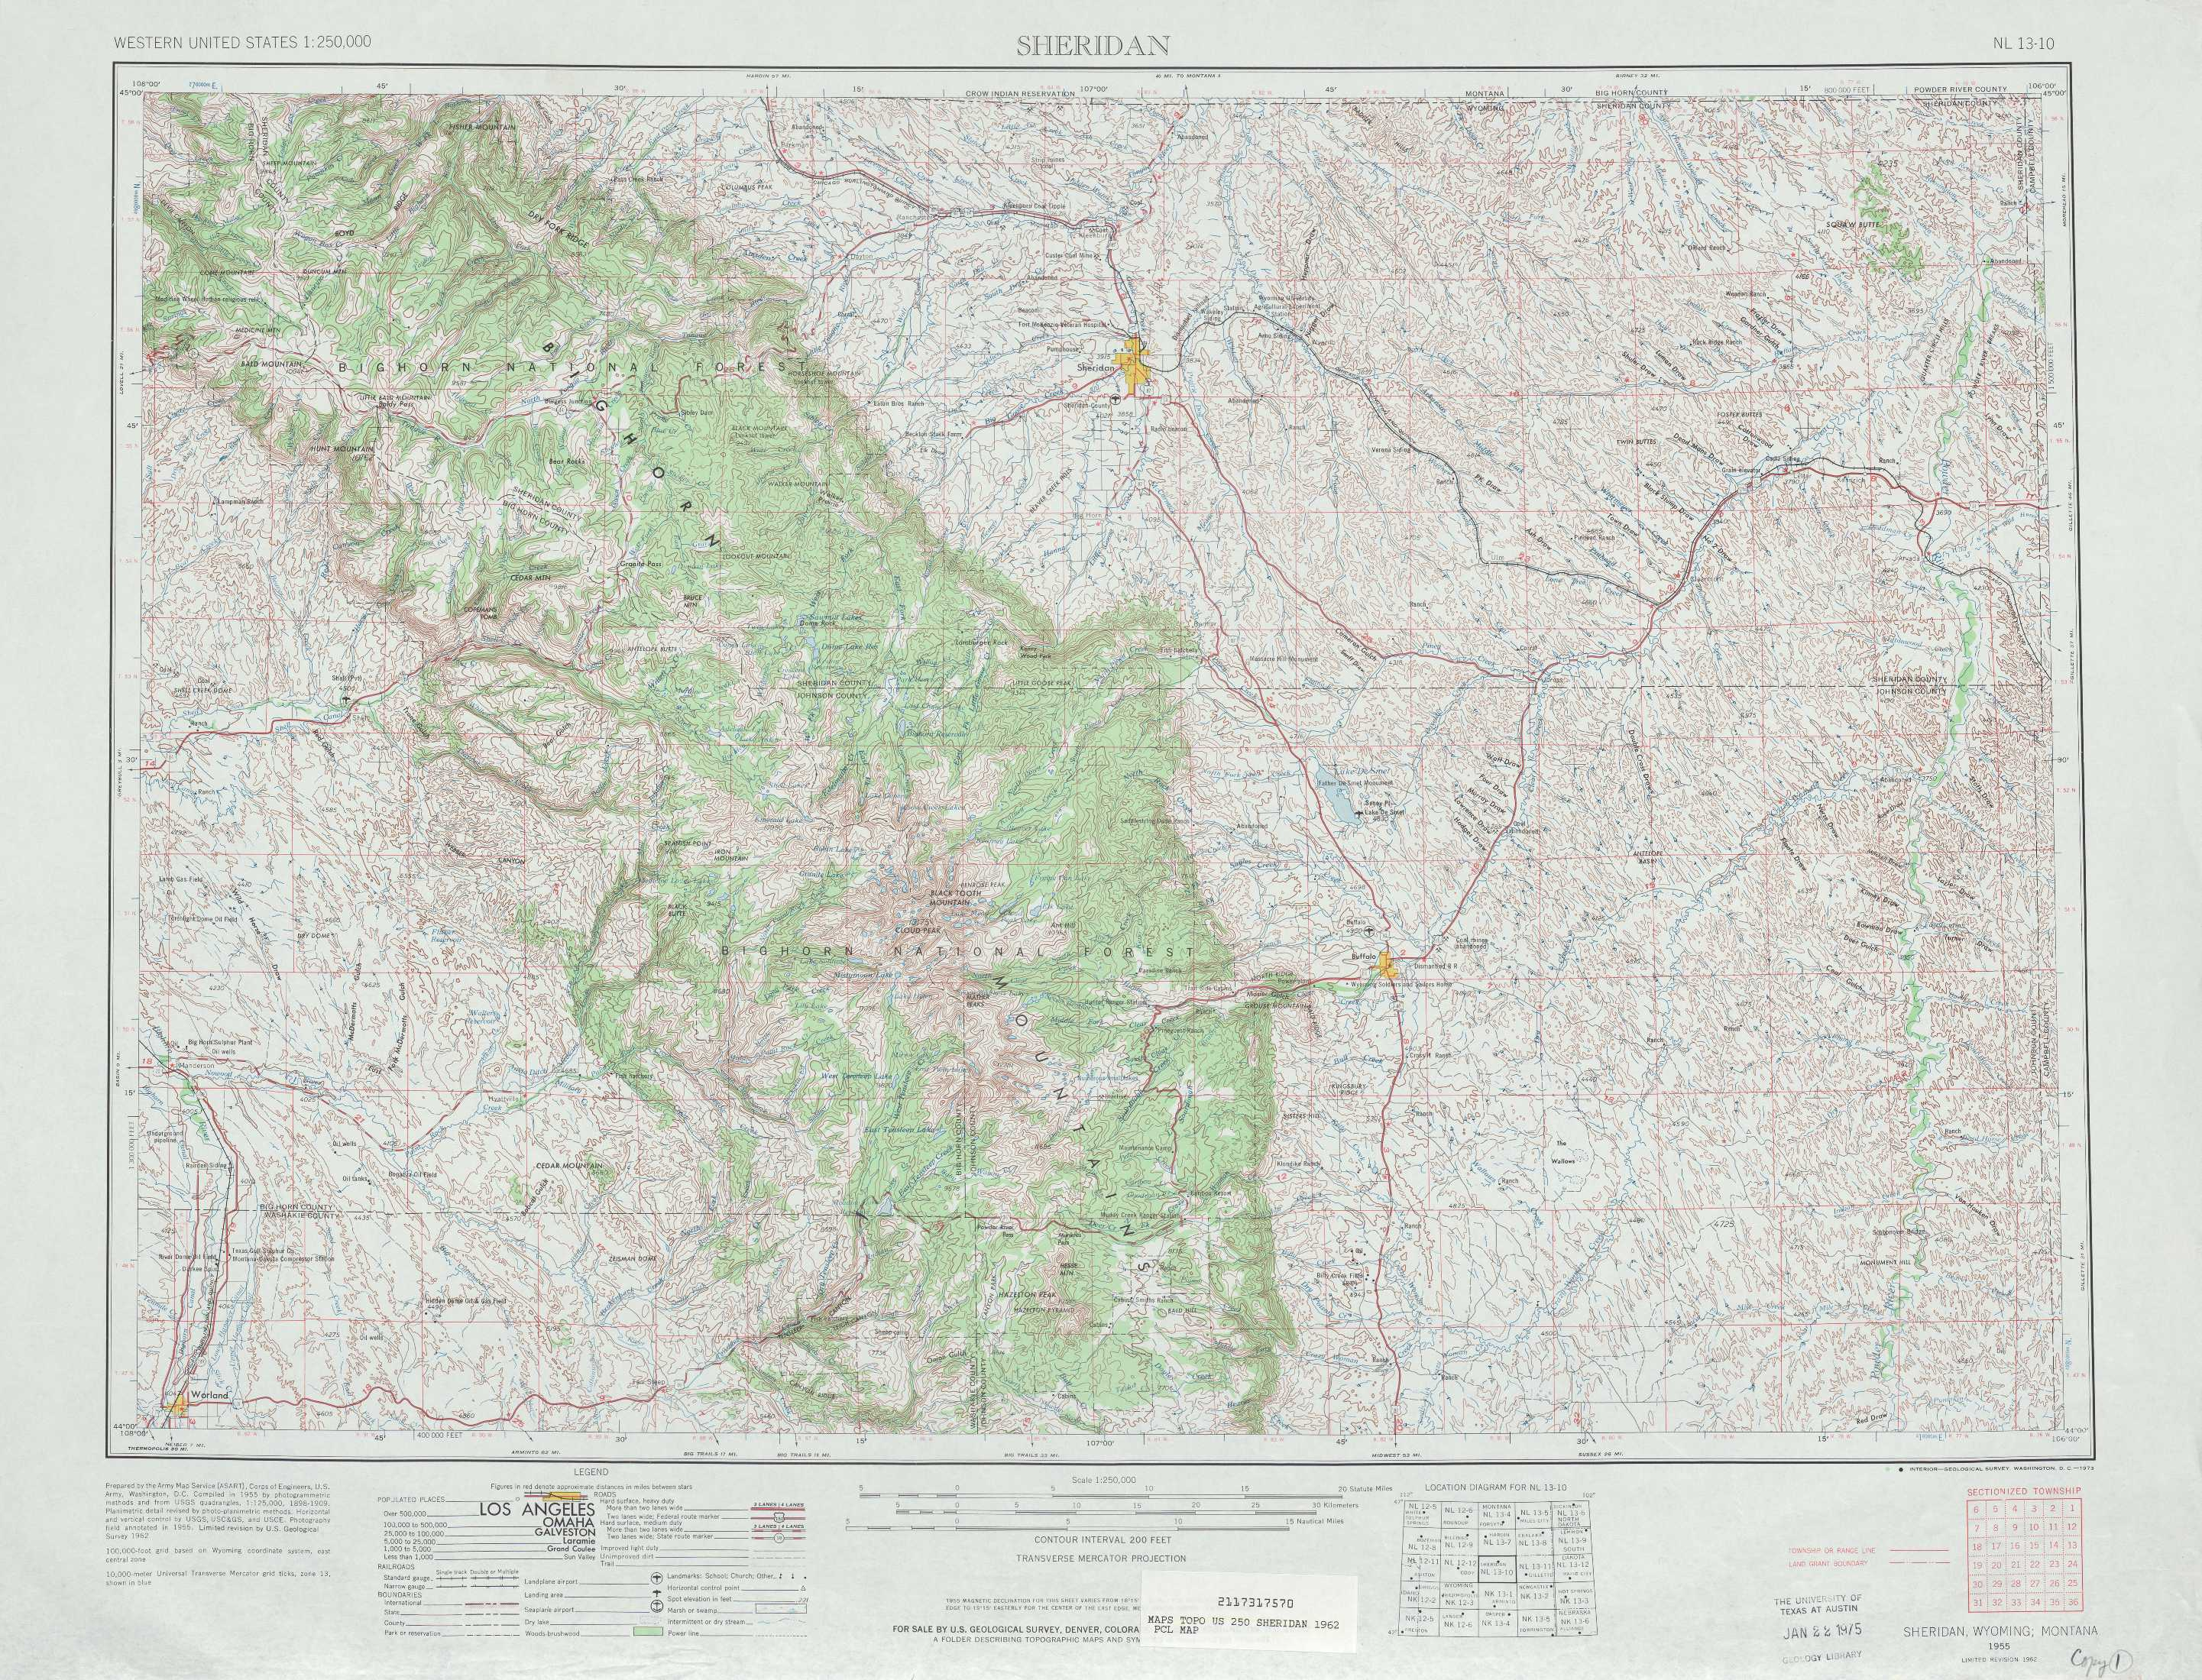 Sheridan Topographic Maps WY  USGS Topo Quad 44106a1 At